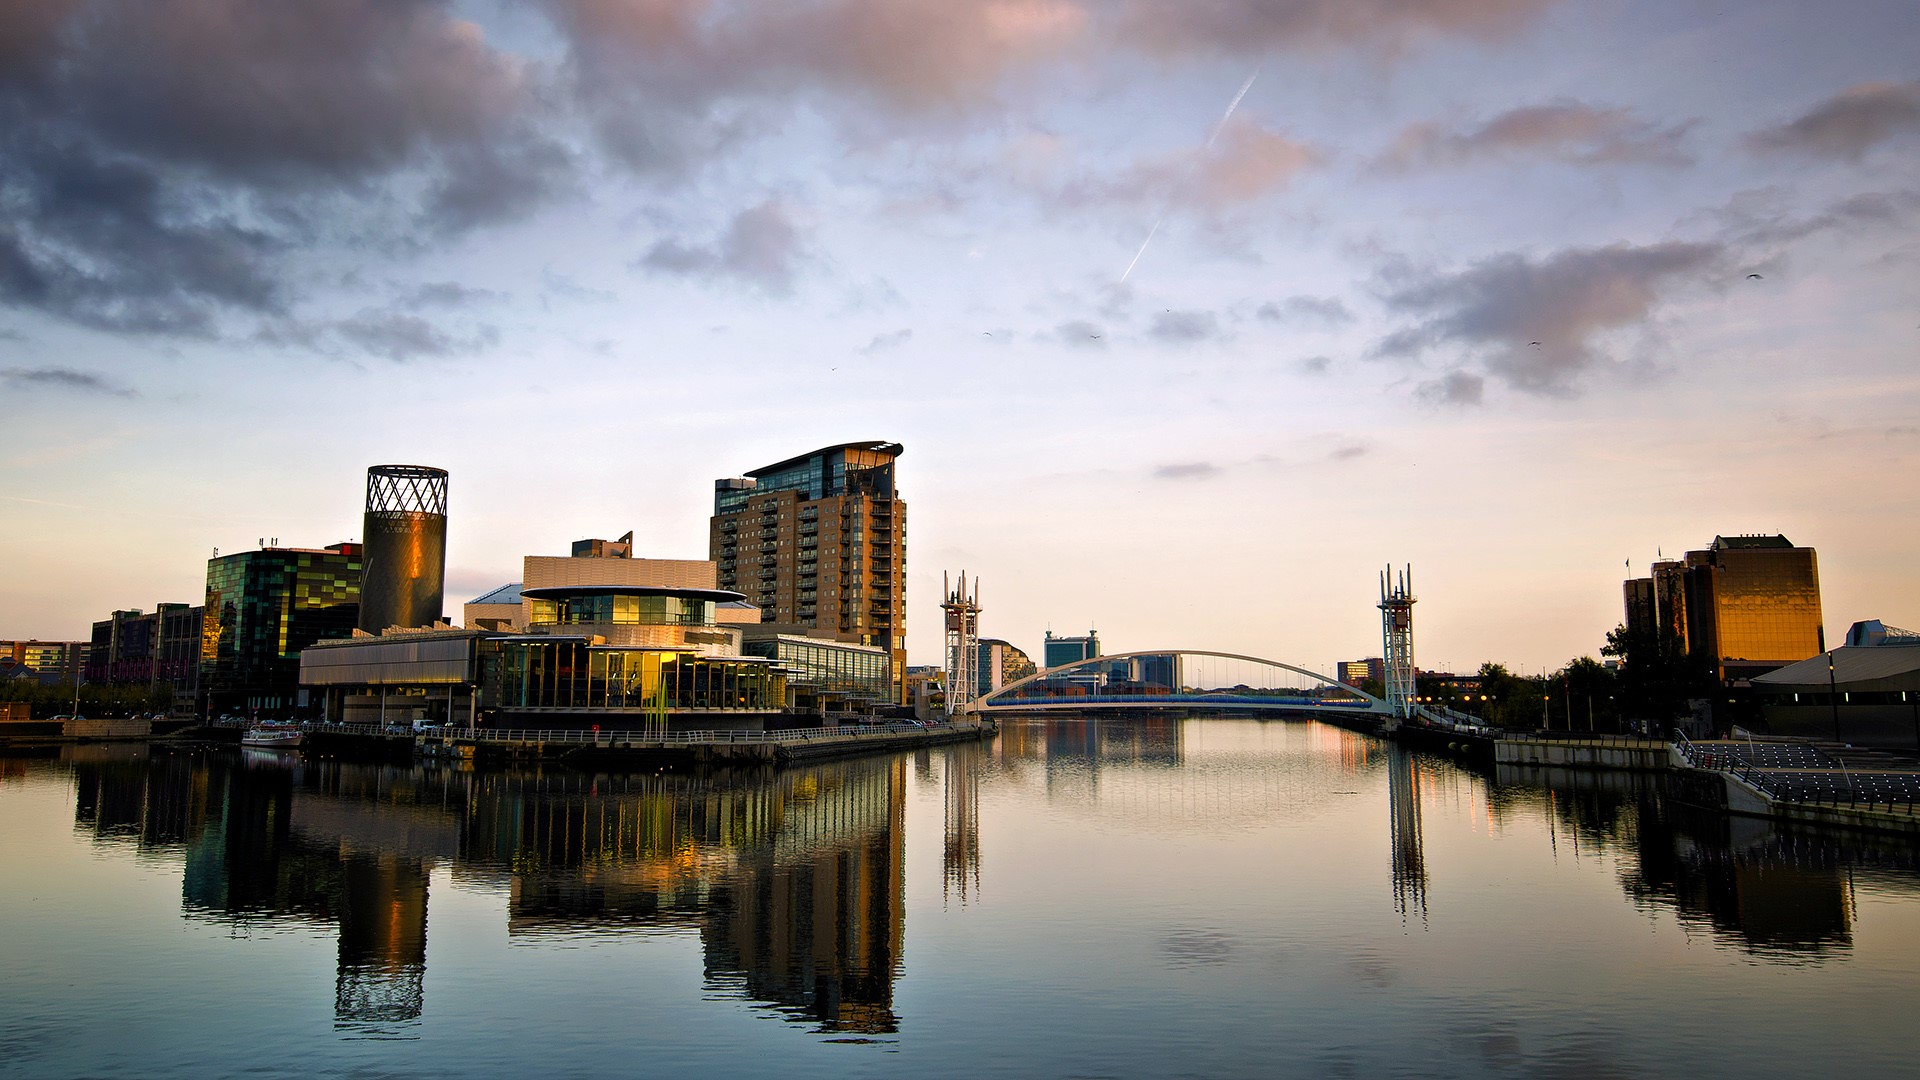 Lowry Theatre And Bridge Reflections At Sunset, Salford